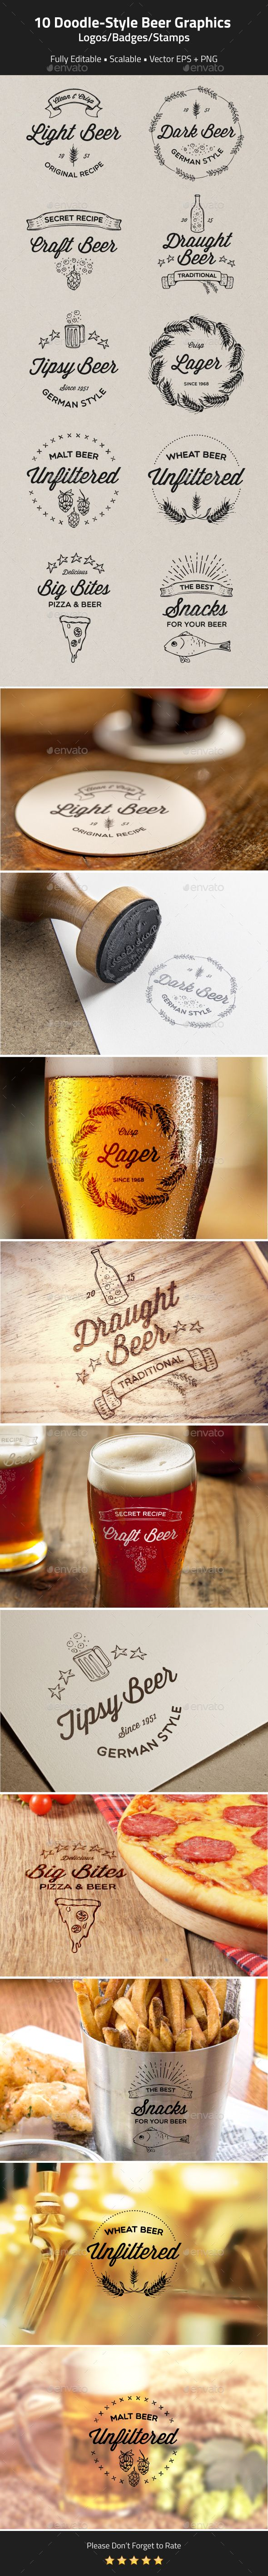 10 DoodleStyle Beer logos, badges, stamps #transparent #png #traditional #vintage • Available here → https://graphicriver.net/item/10-doodlestyle-beer-logos-badges-stamps/13834329?ref=pxcr